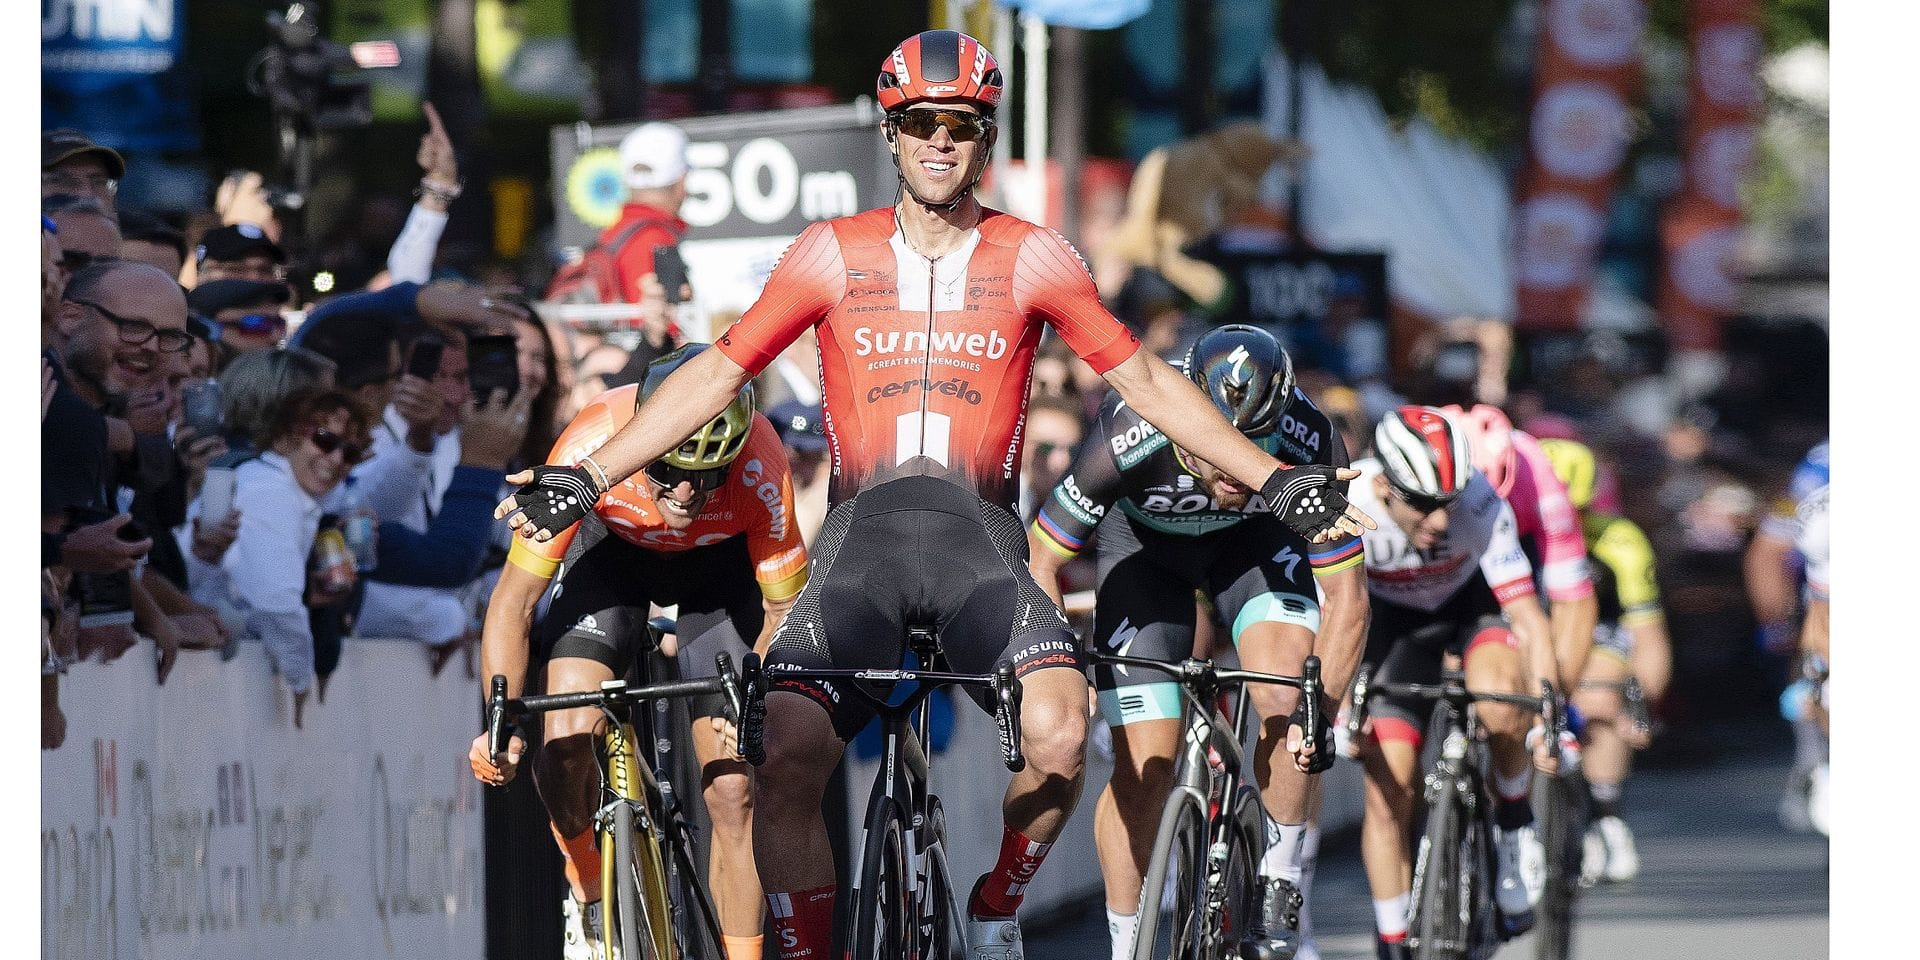 Michael Matthews, of Australia, raises his arms as he wins the Grand Prix Cycliste de Quebec, in Quebec City, Friday, Sept. 13, 2019. Matthews is flanked by third-place Greg Van Avermaet, left, of Belgium, and second-place Peter Sagan, of Slovakia. (Jacques Boissinot/The Canadian Press via AP)